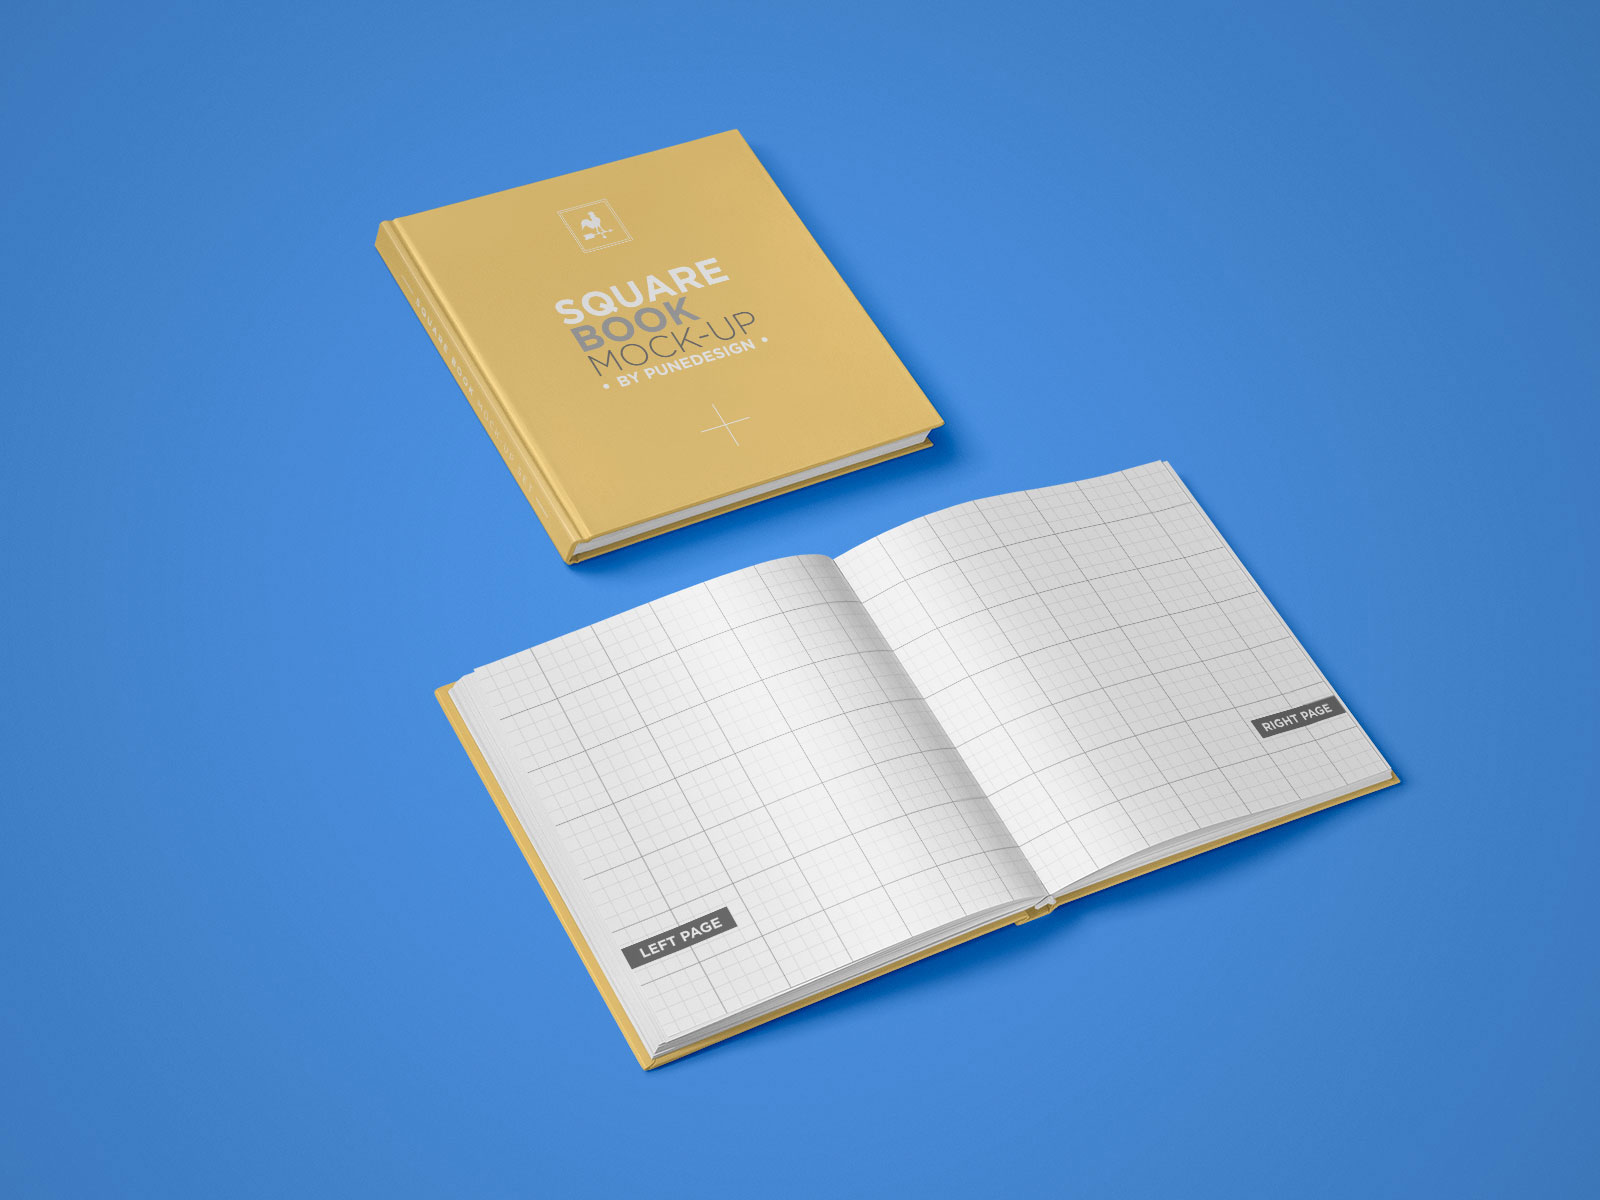 Free-Square-Hardcover-Title-&-Opened-Book-Mockup-PSD